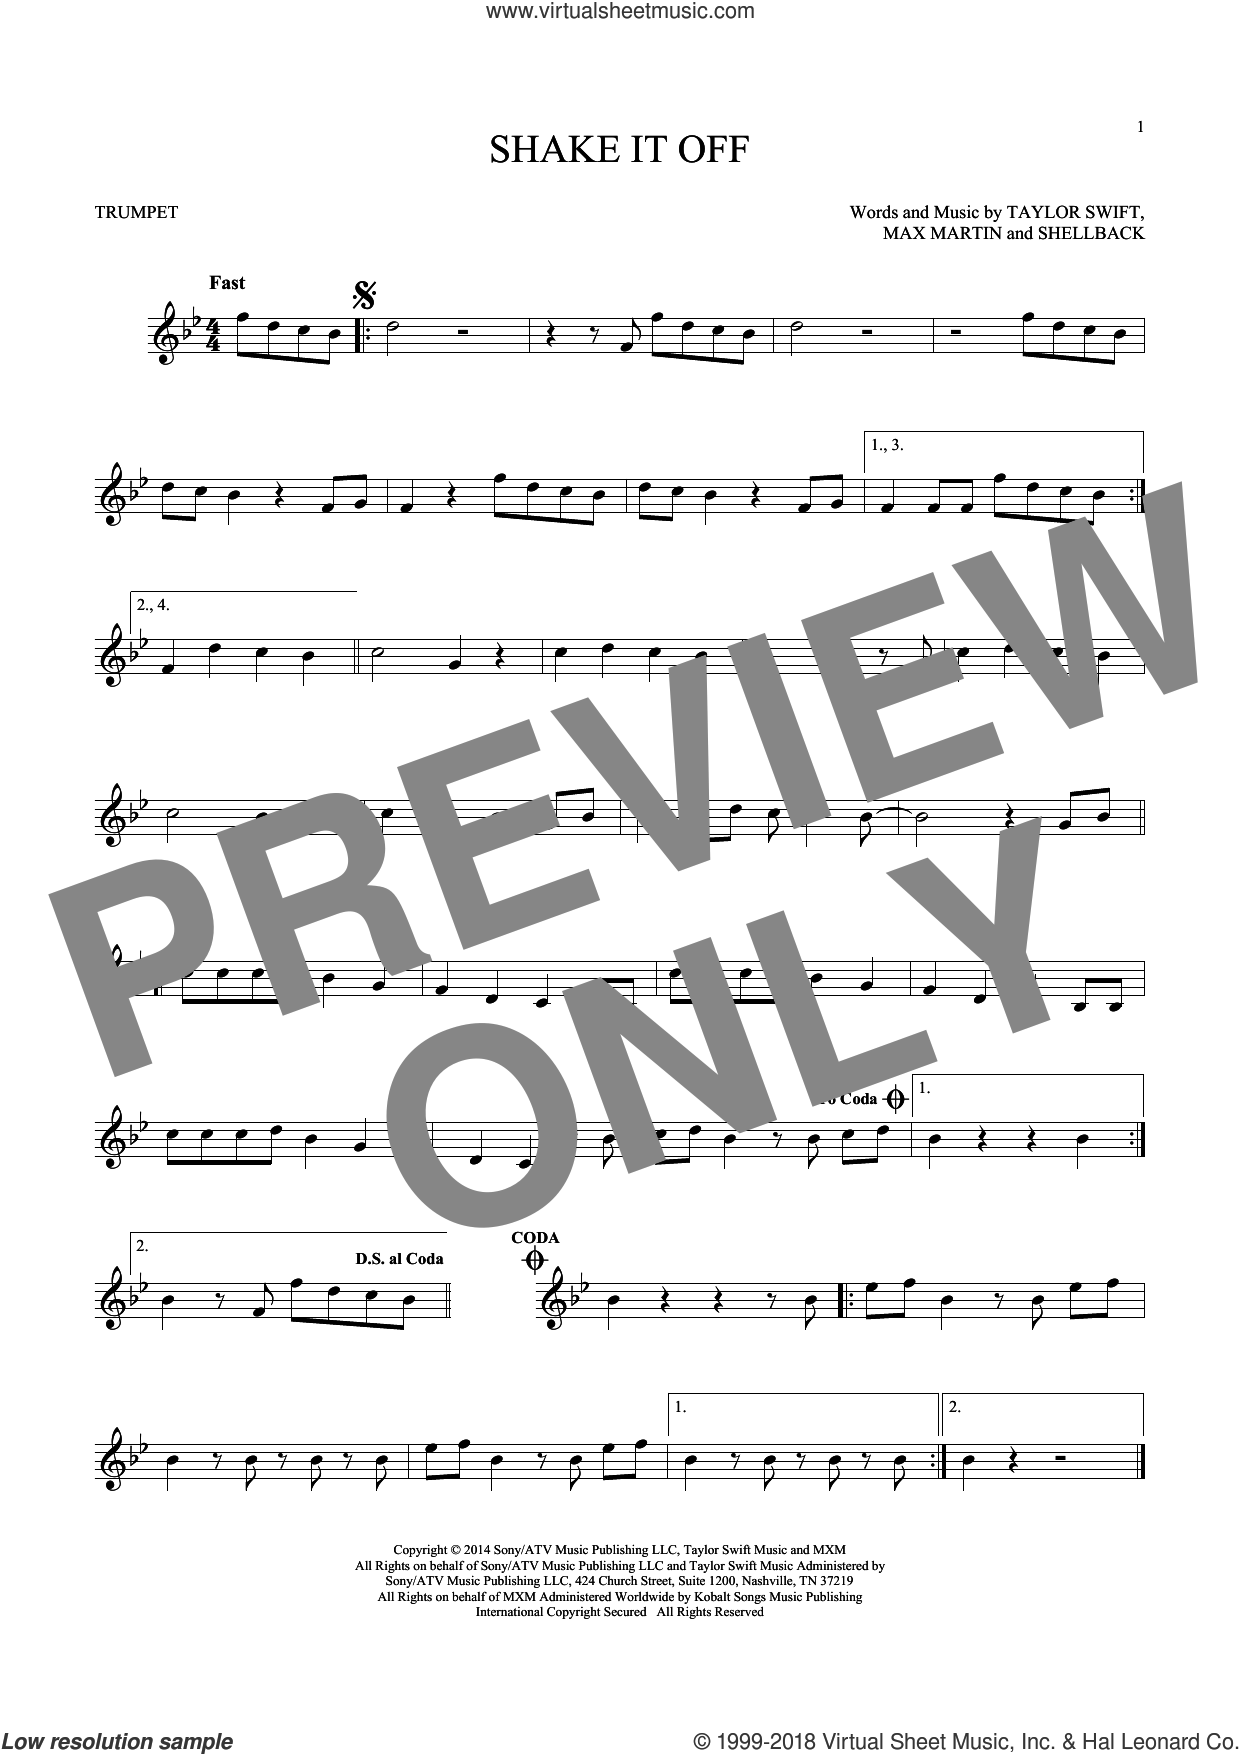 Shake It Off sheet music for trumpet solo by Taylor Swift, Johan Schuster, Max Martin and Shellback, intermediate trumpet. Score Image Preview.